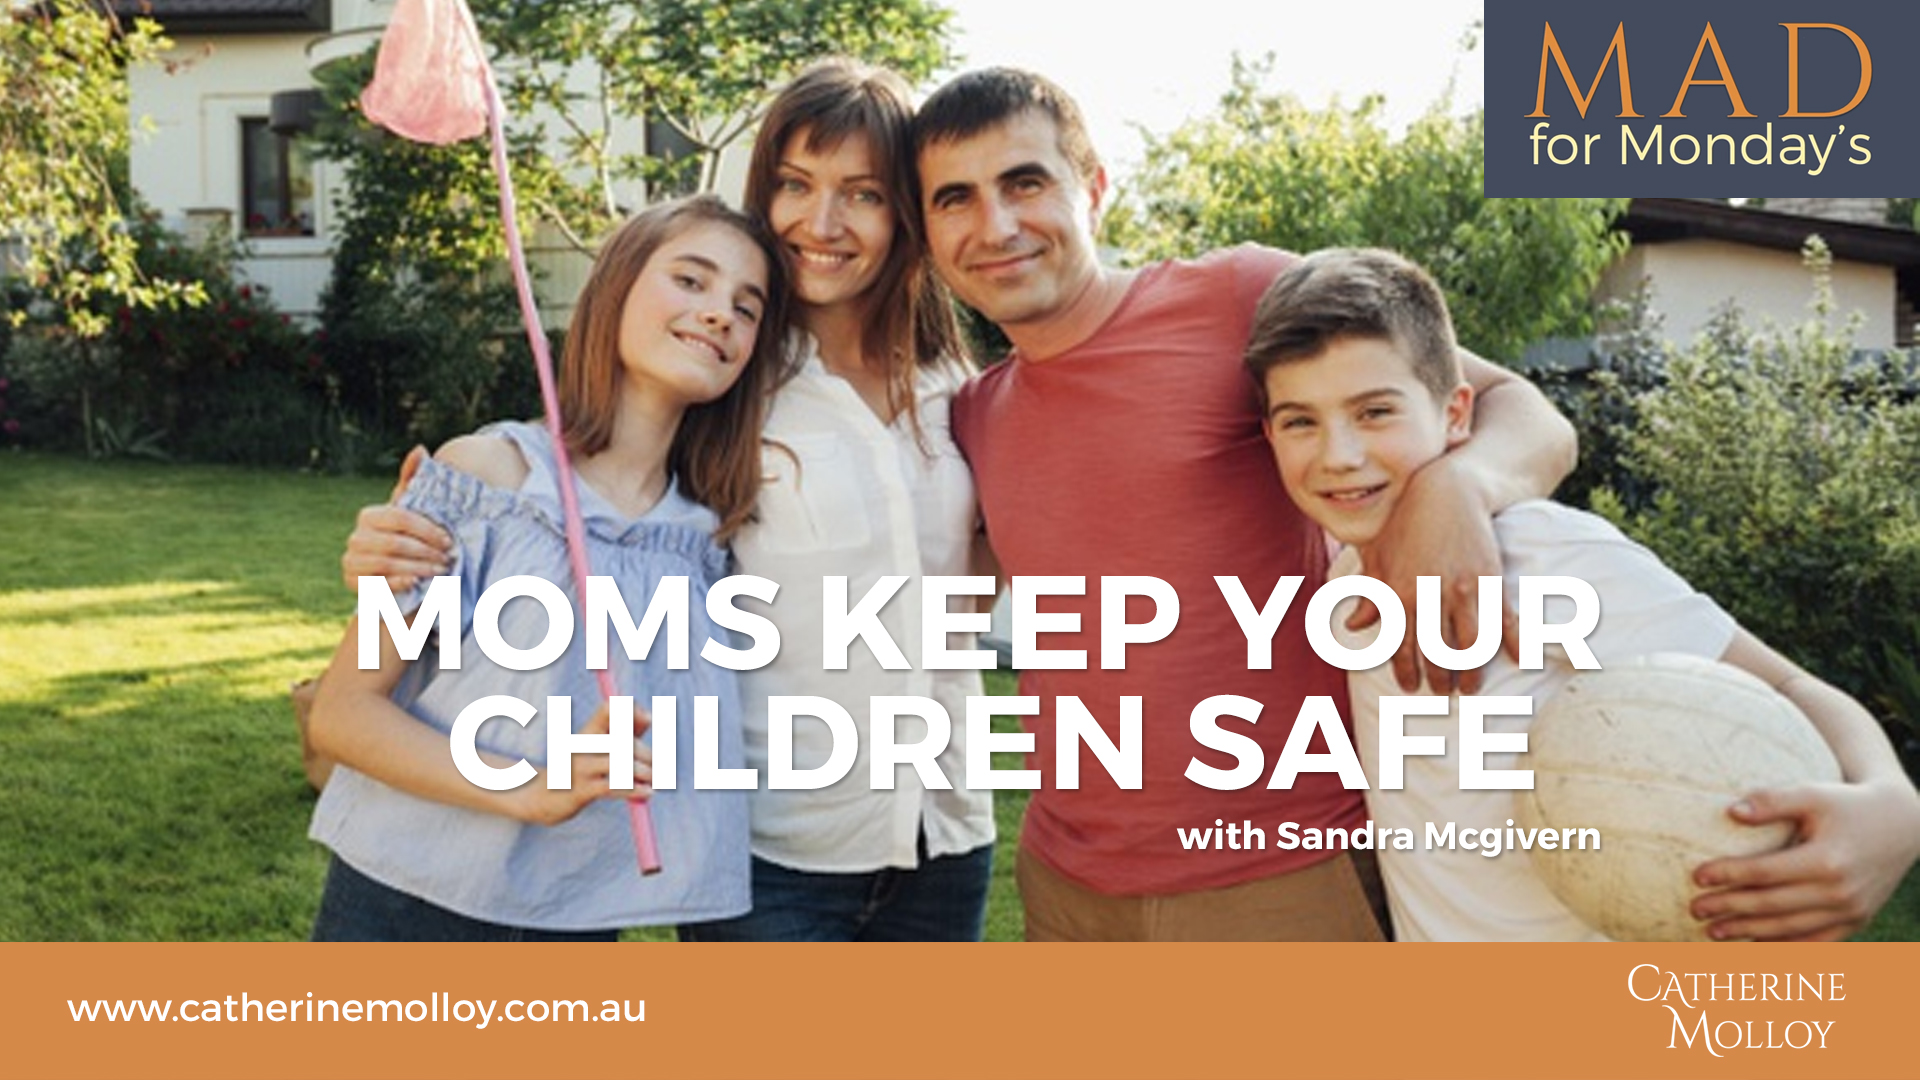 MAD for Monday's – Moms keep your children safe